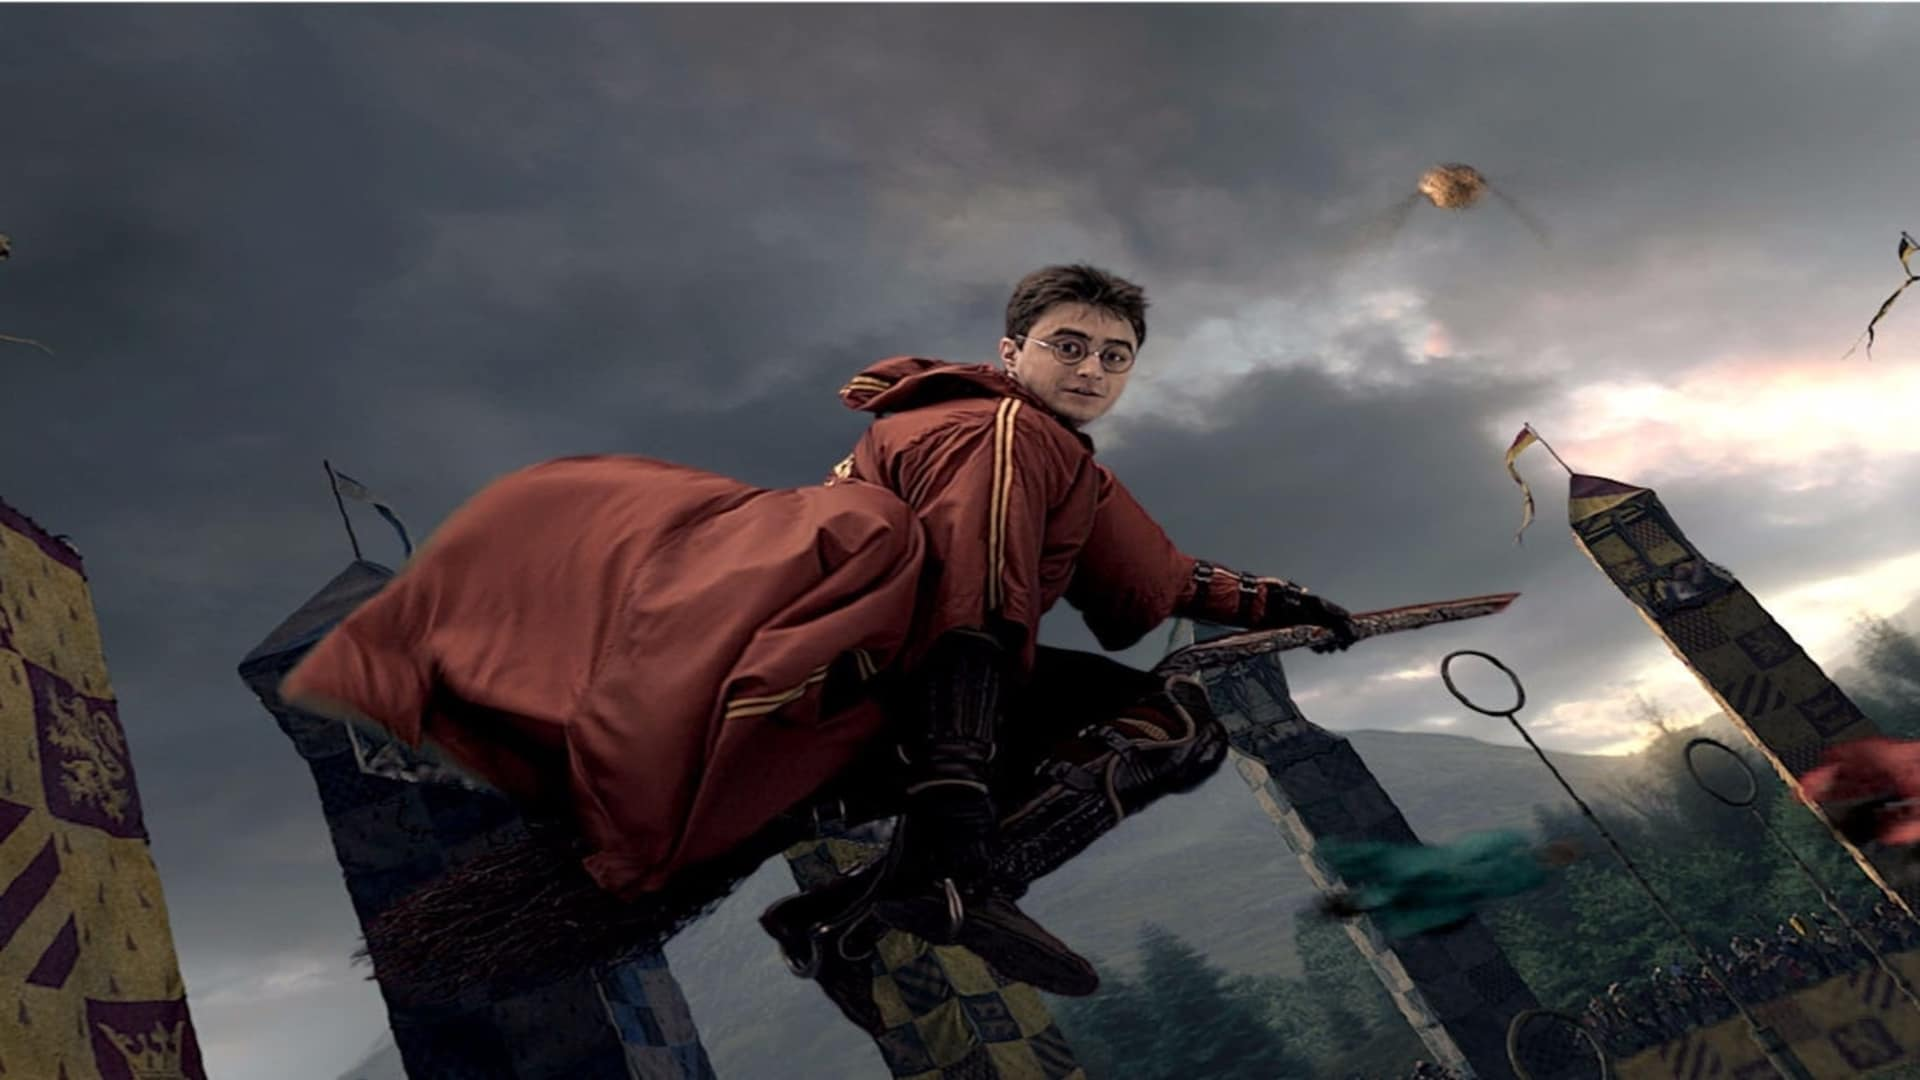 The fighter Harry in Quidditch